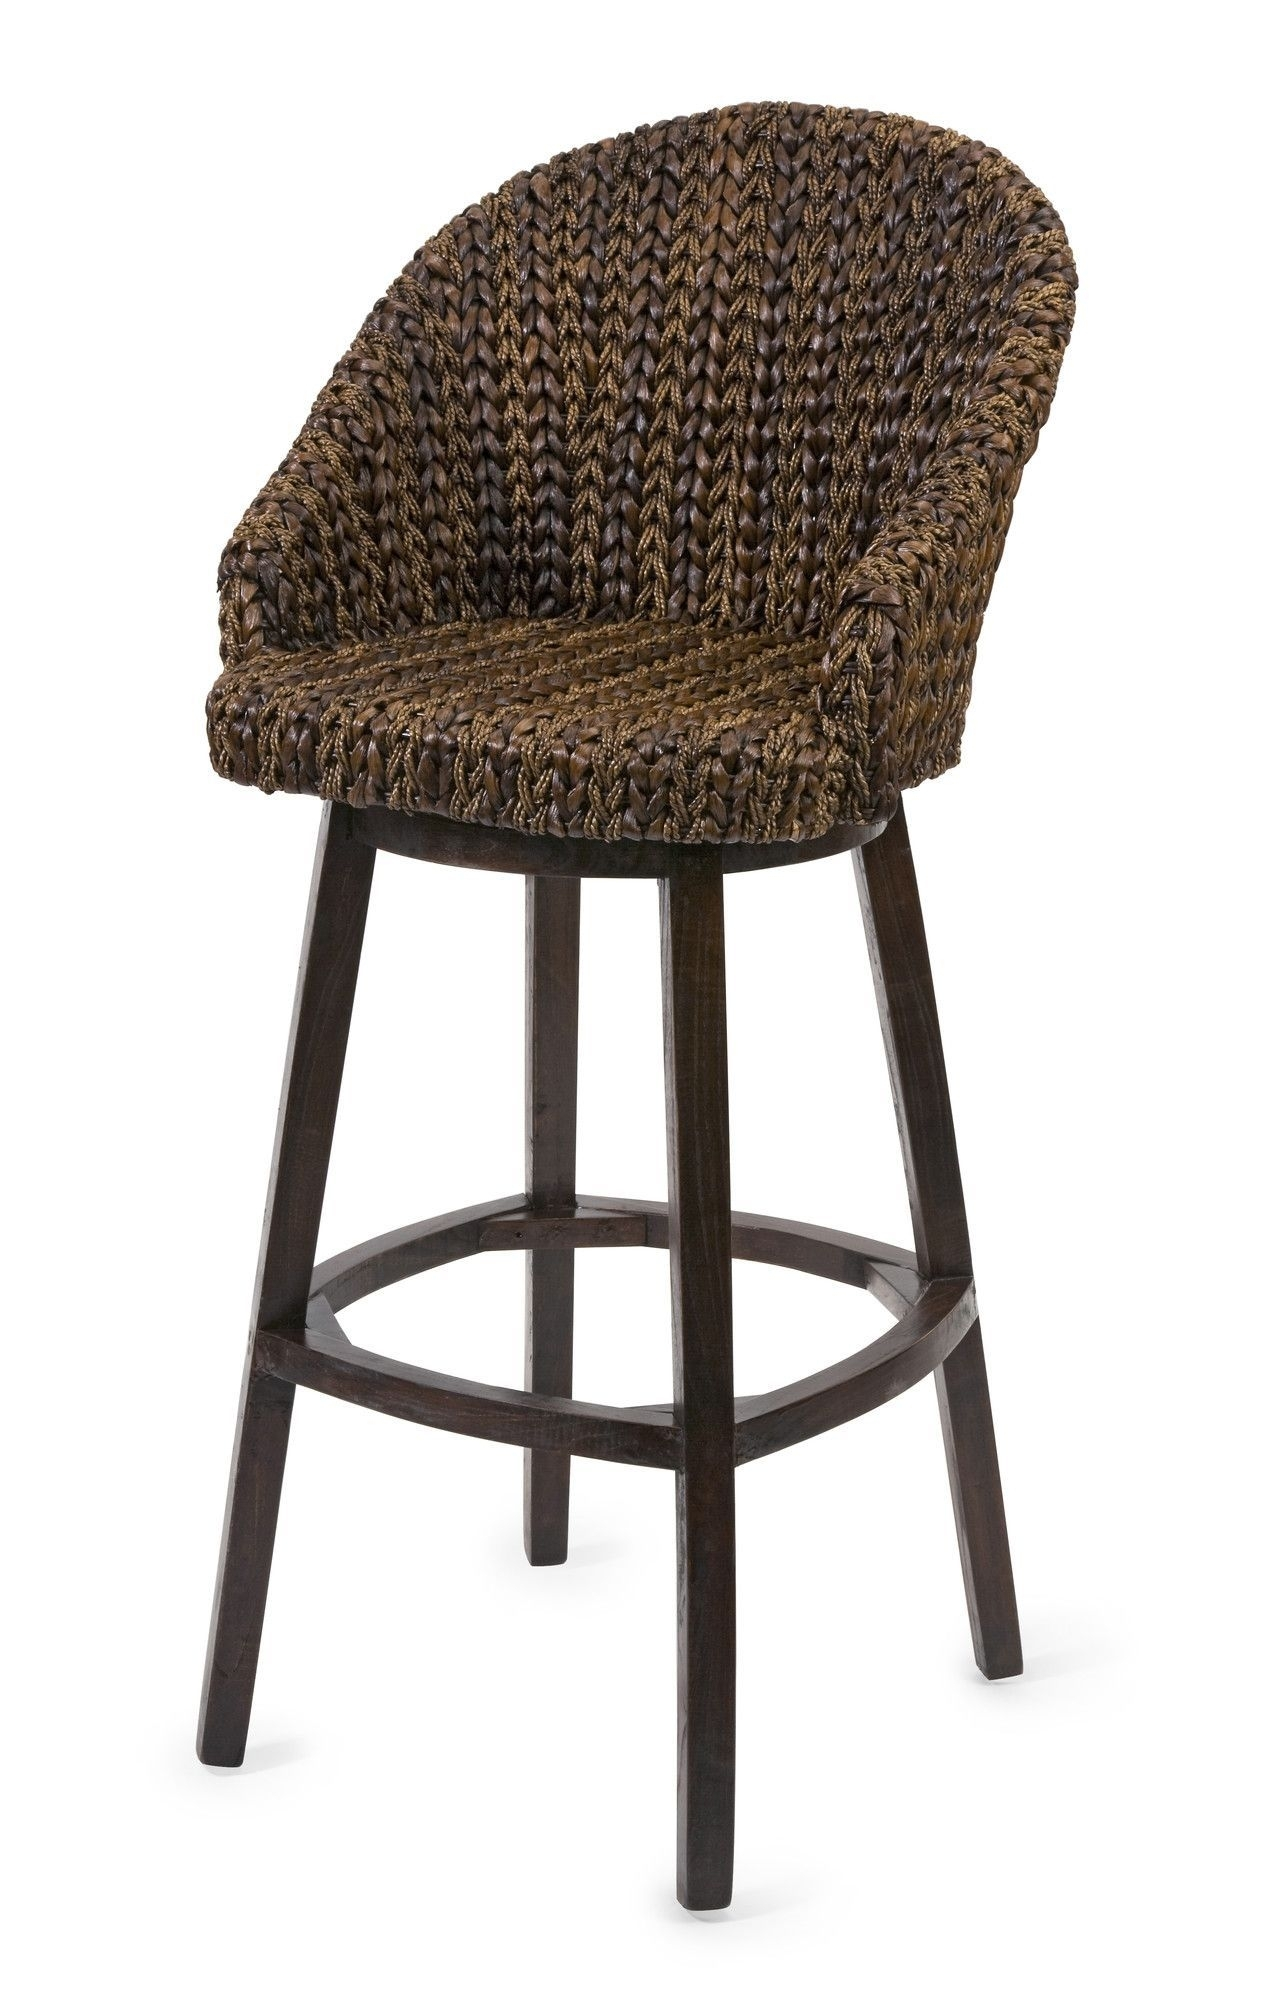 Picture of: Bamboo Barstools Ideas On Foter